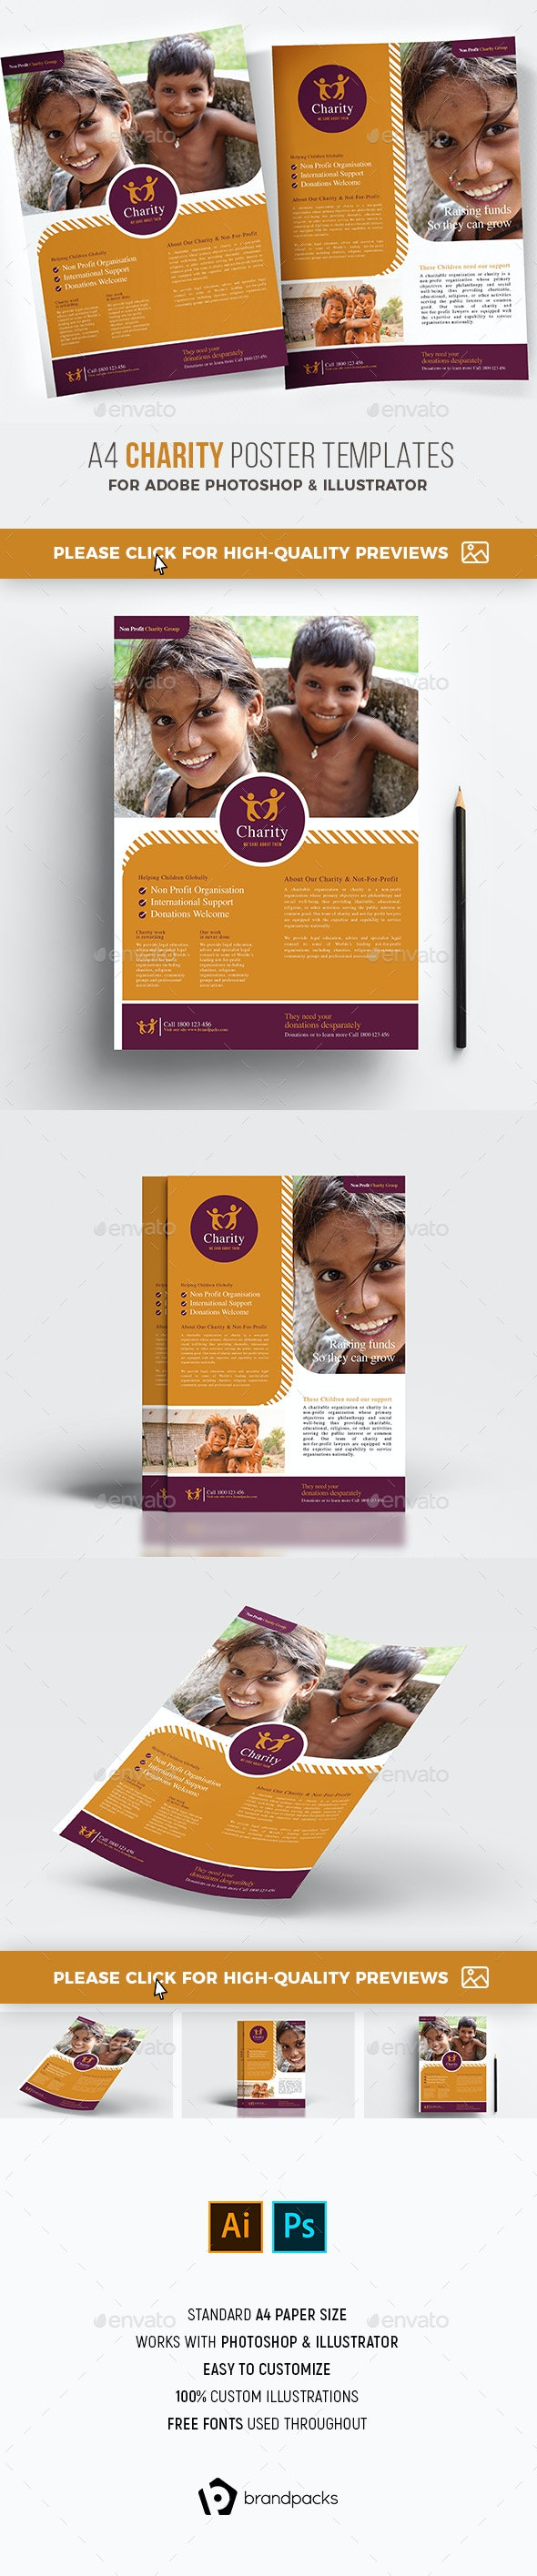 Charity Poster Templates - Church Flyers